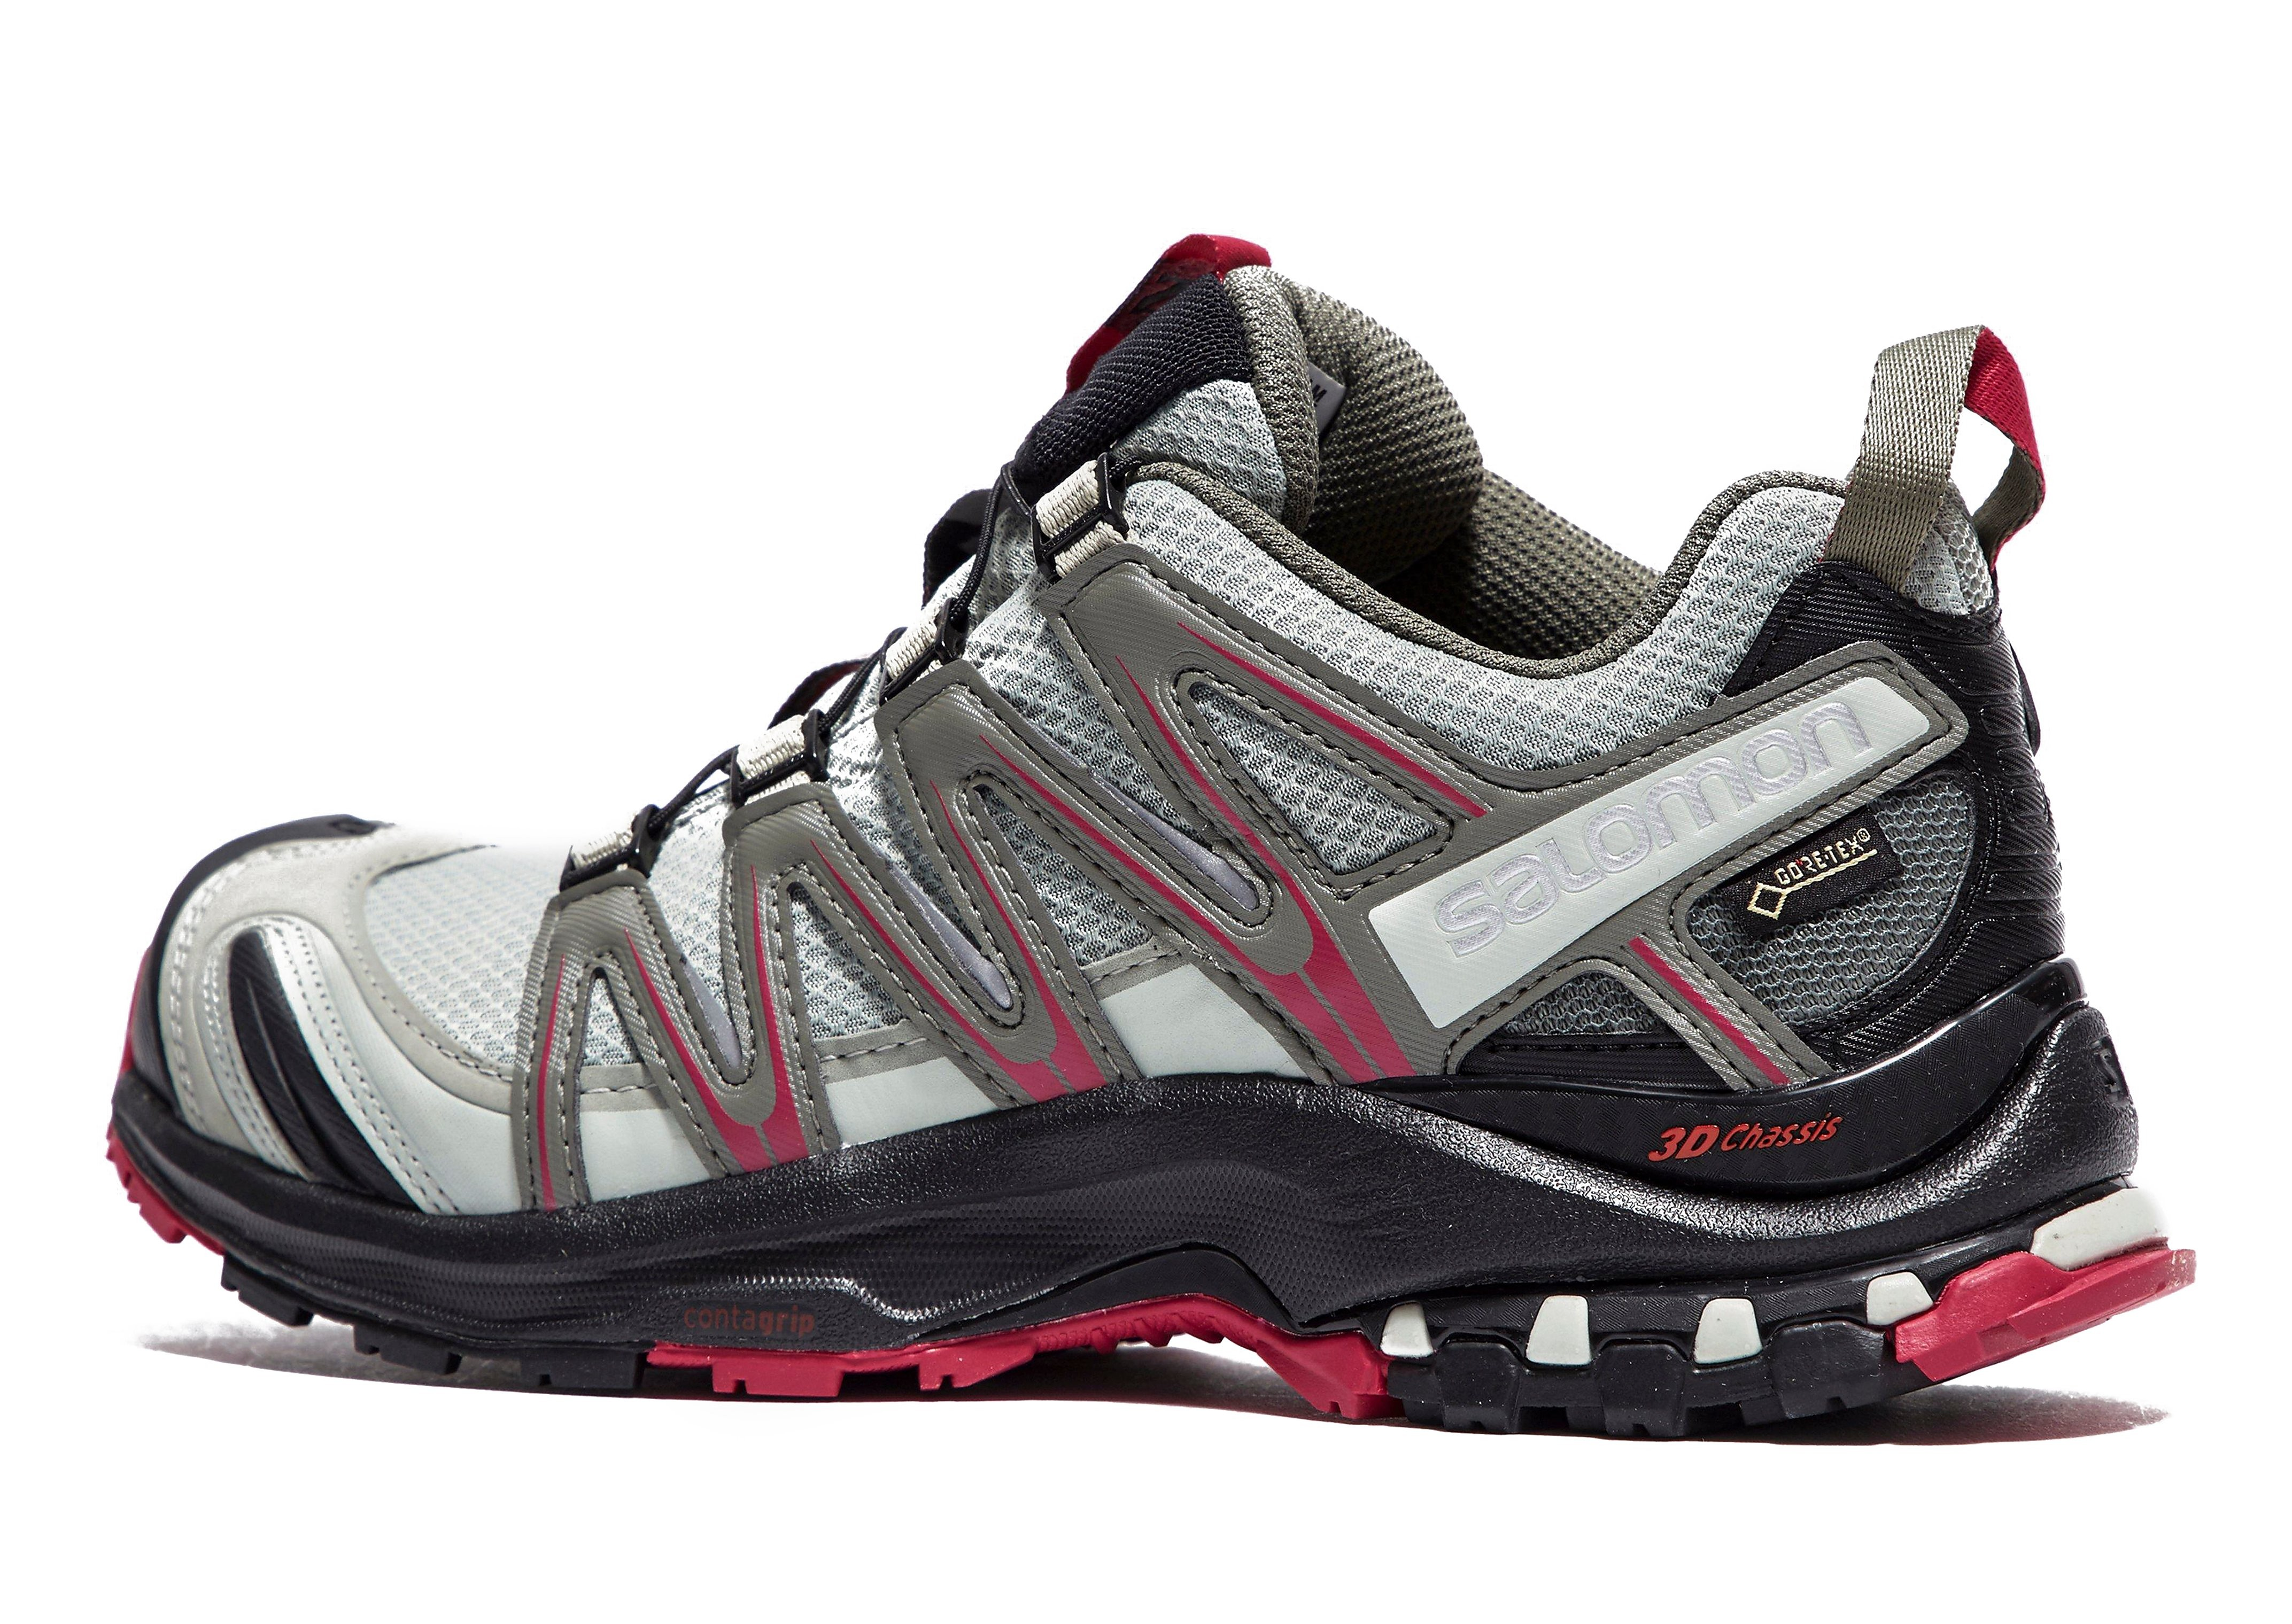 Salomon XA Pro 3D GTX Trail Running Shoes Women's